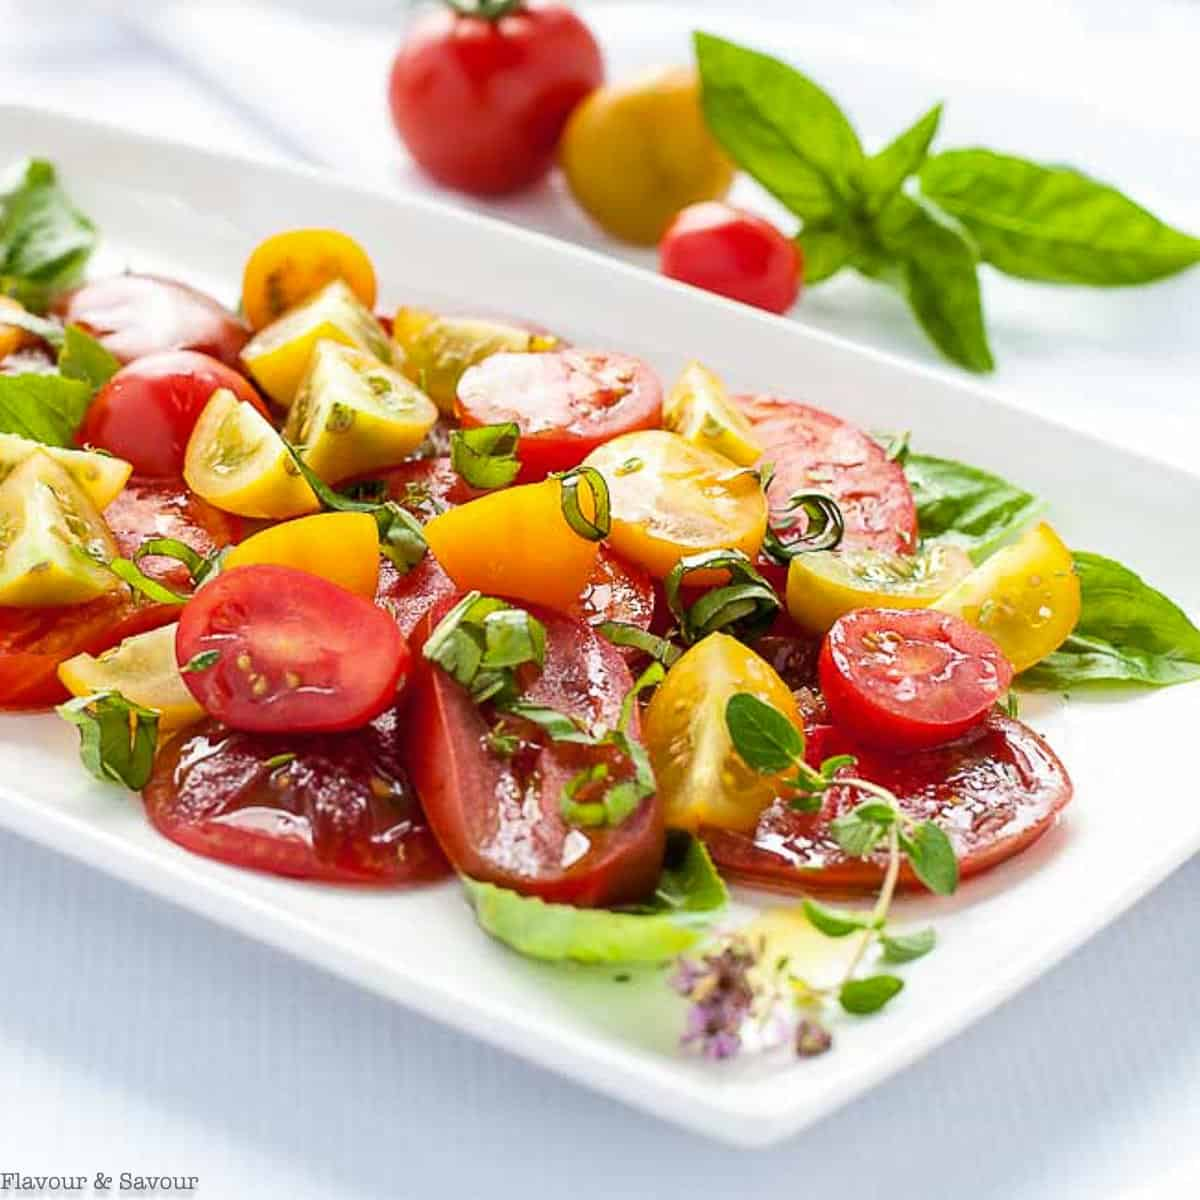 Heirloom tomato salad with fresh herbs on a white platter.